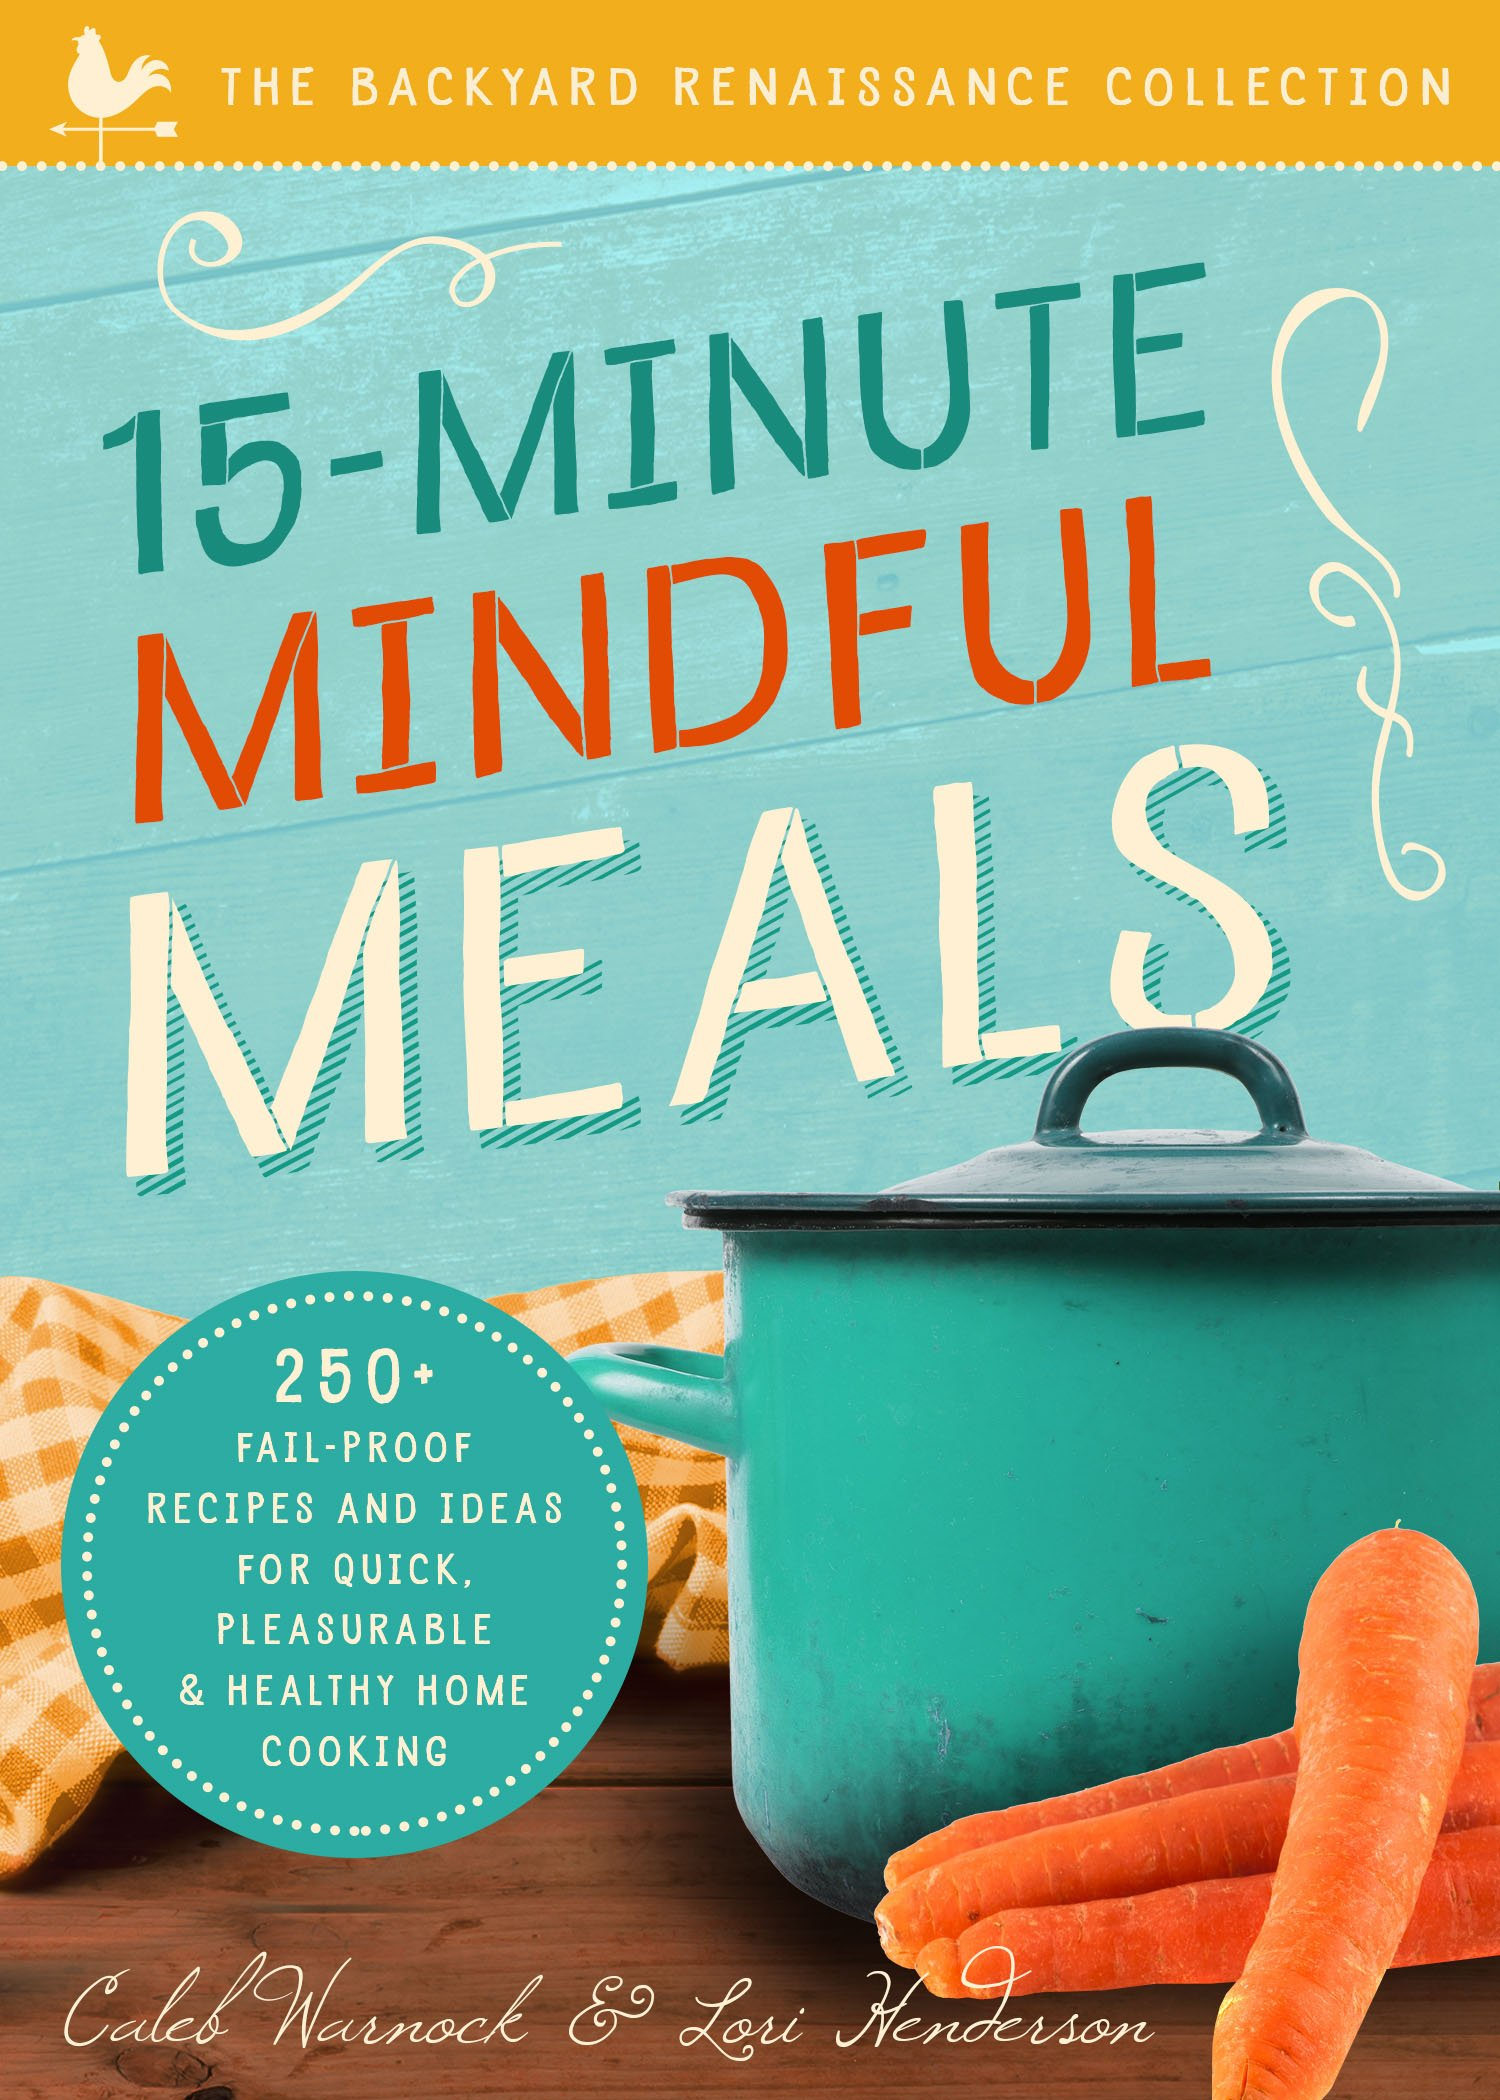 Buy 15-Minute Mindful Meals: 250+ Recipes and Ideas for